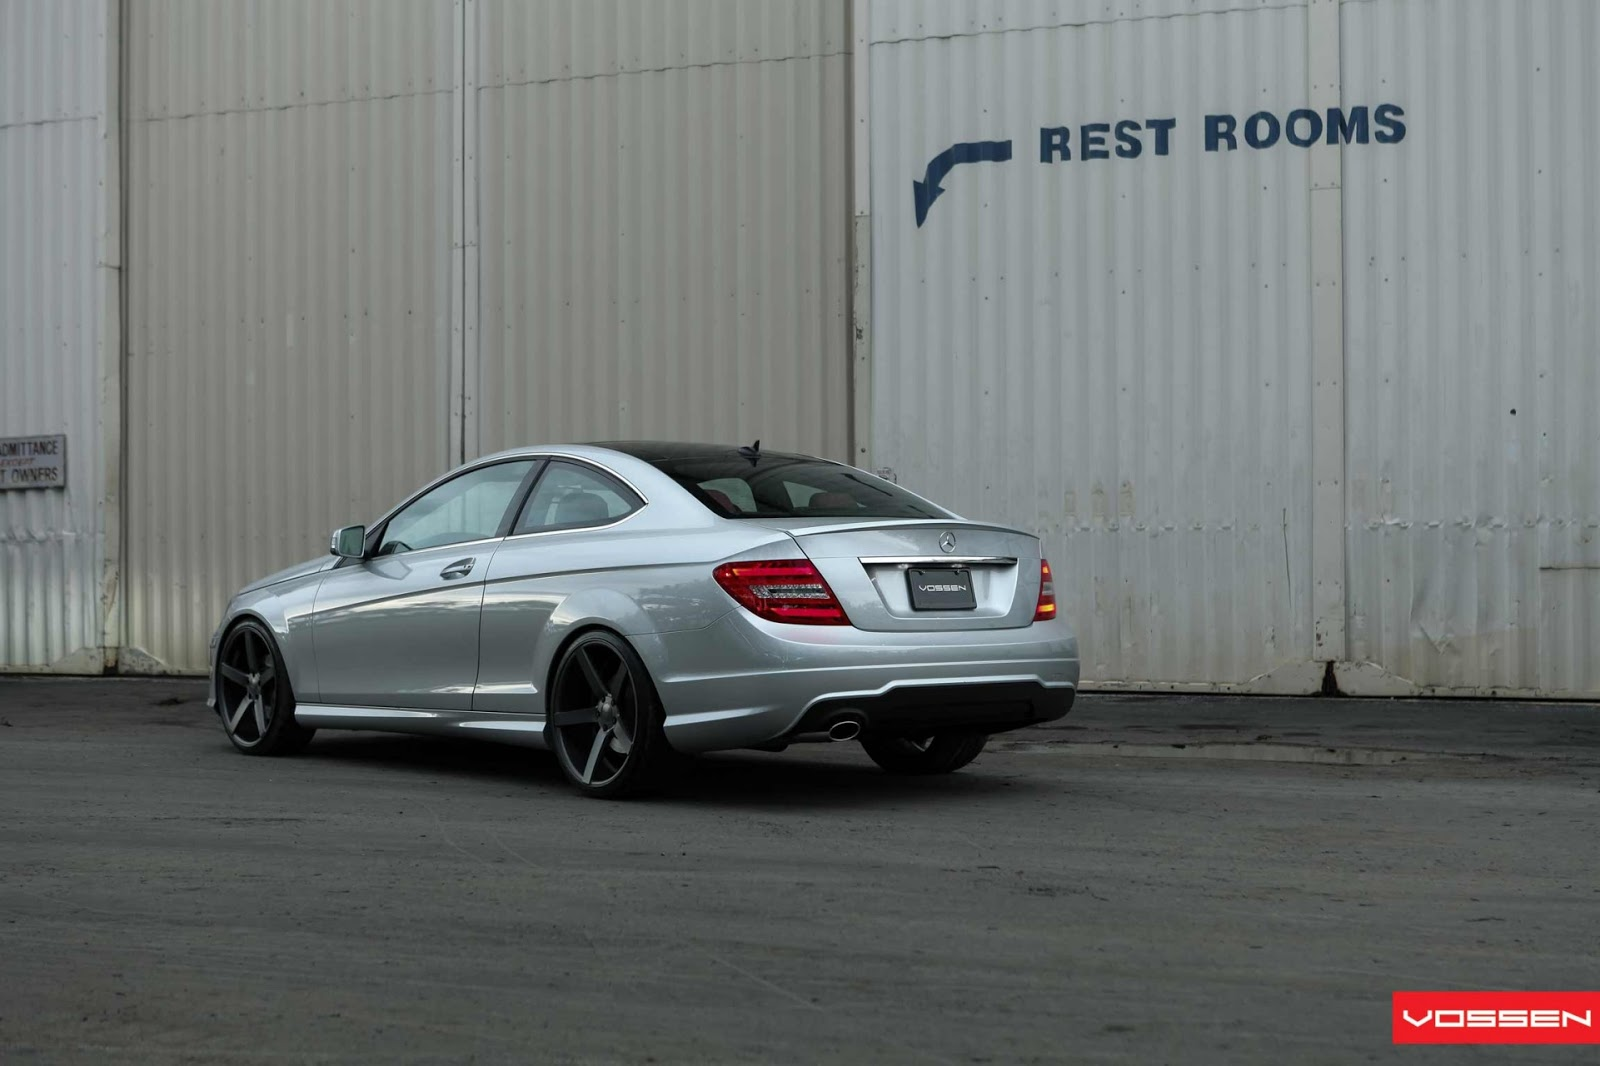 [Image: 2013+Vossen+Wheels+Mercedes+Benz+C-250+Coupe,,.jpg]